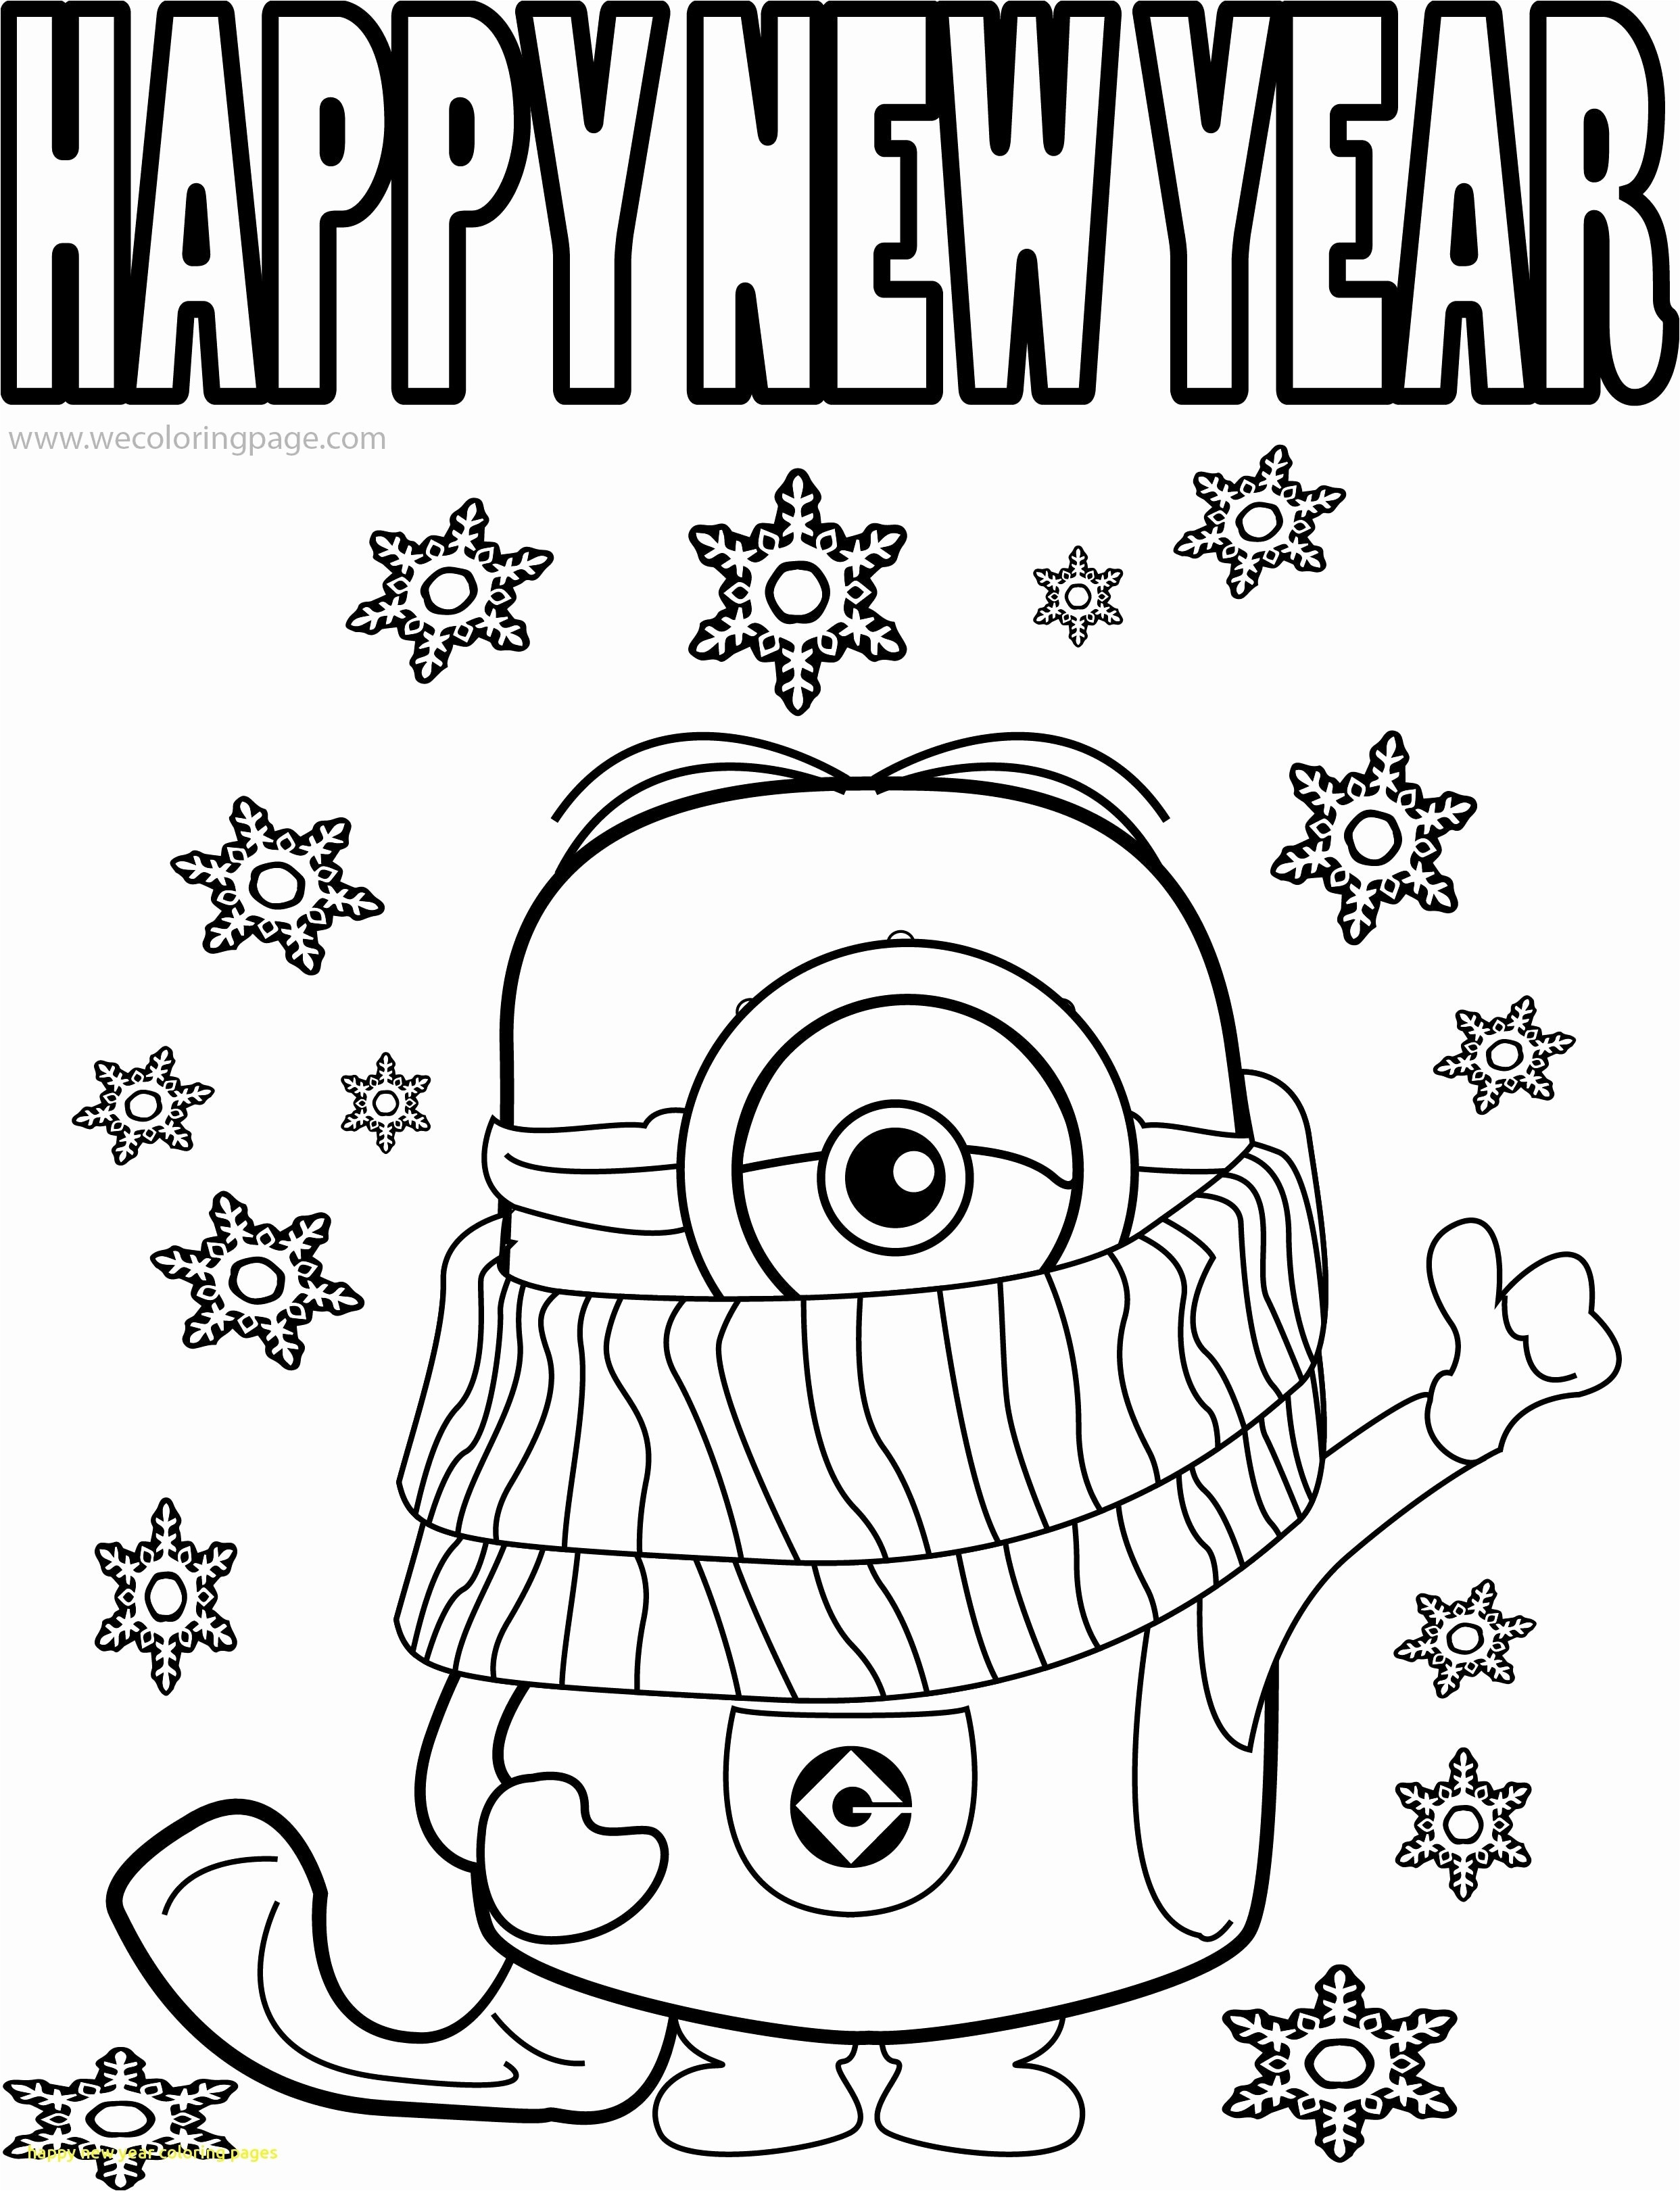 happy face vase of coloring page com cool coloring pages in coloring pages for fresh cool vases flower vase coloring page pages flowers in a top i